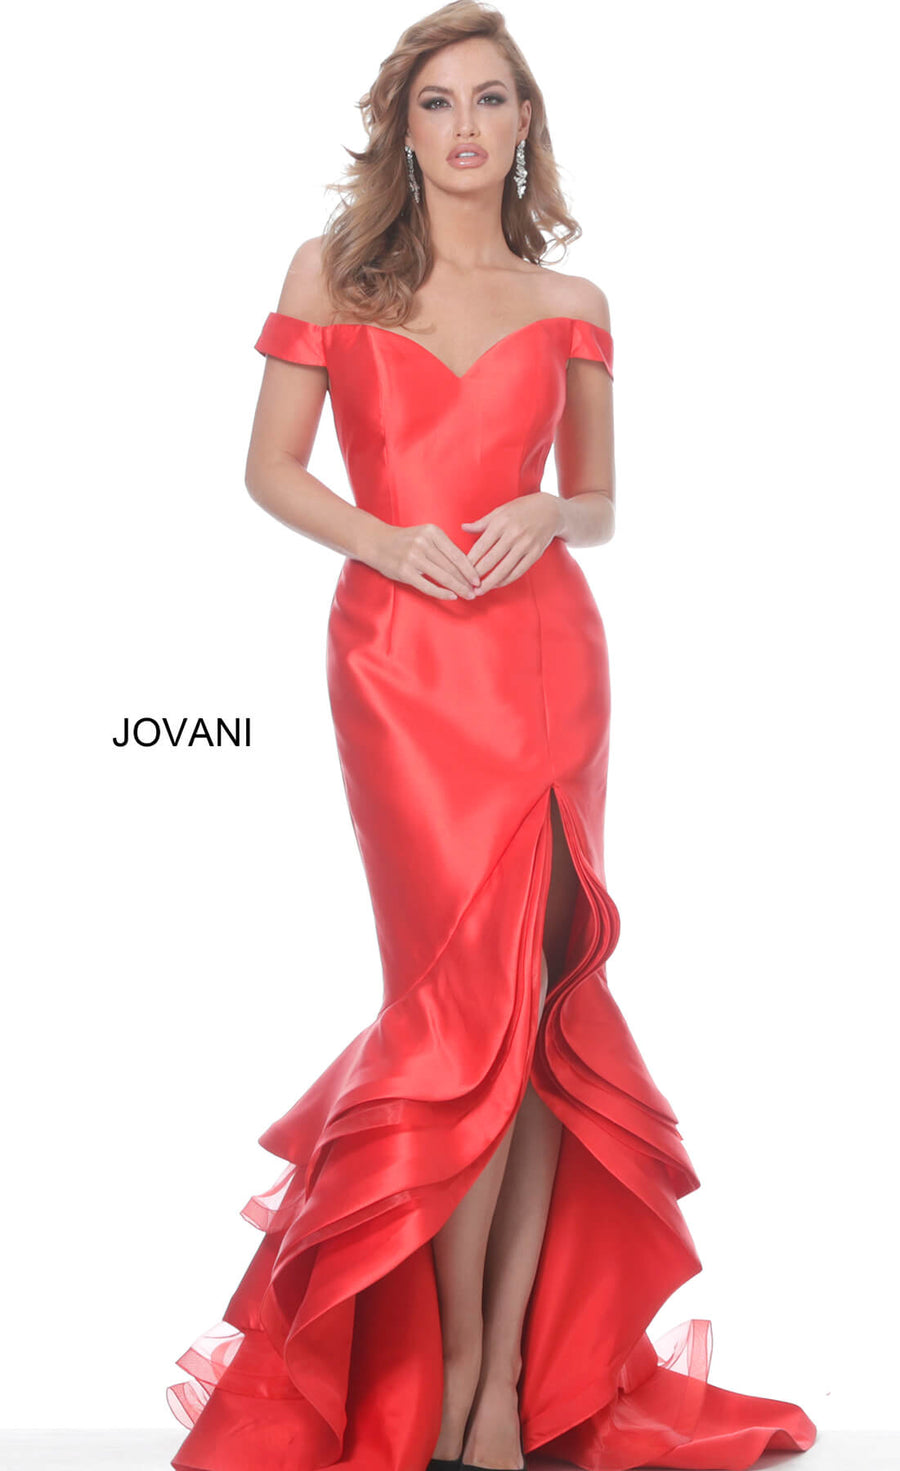 Jovani 3823 Off the Shoulder High Low Evening Dress